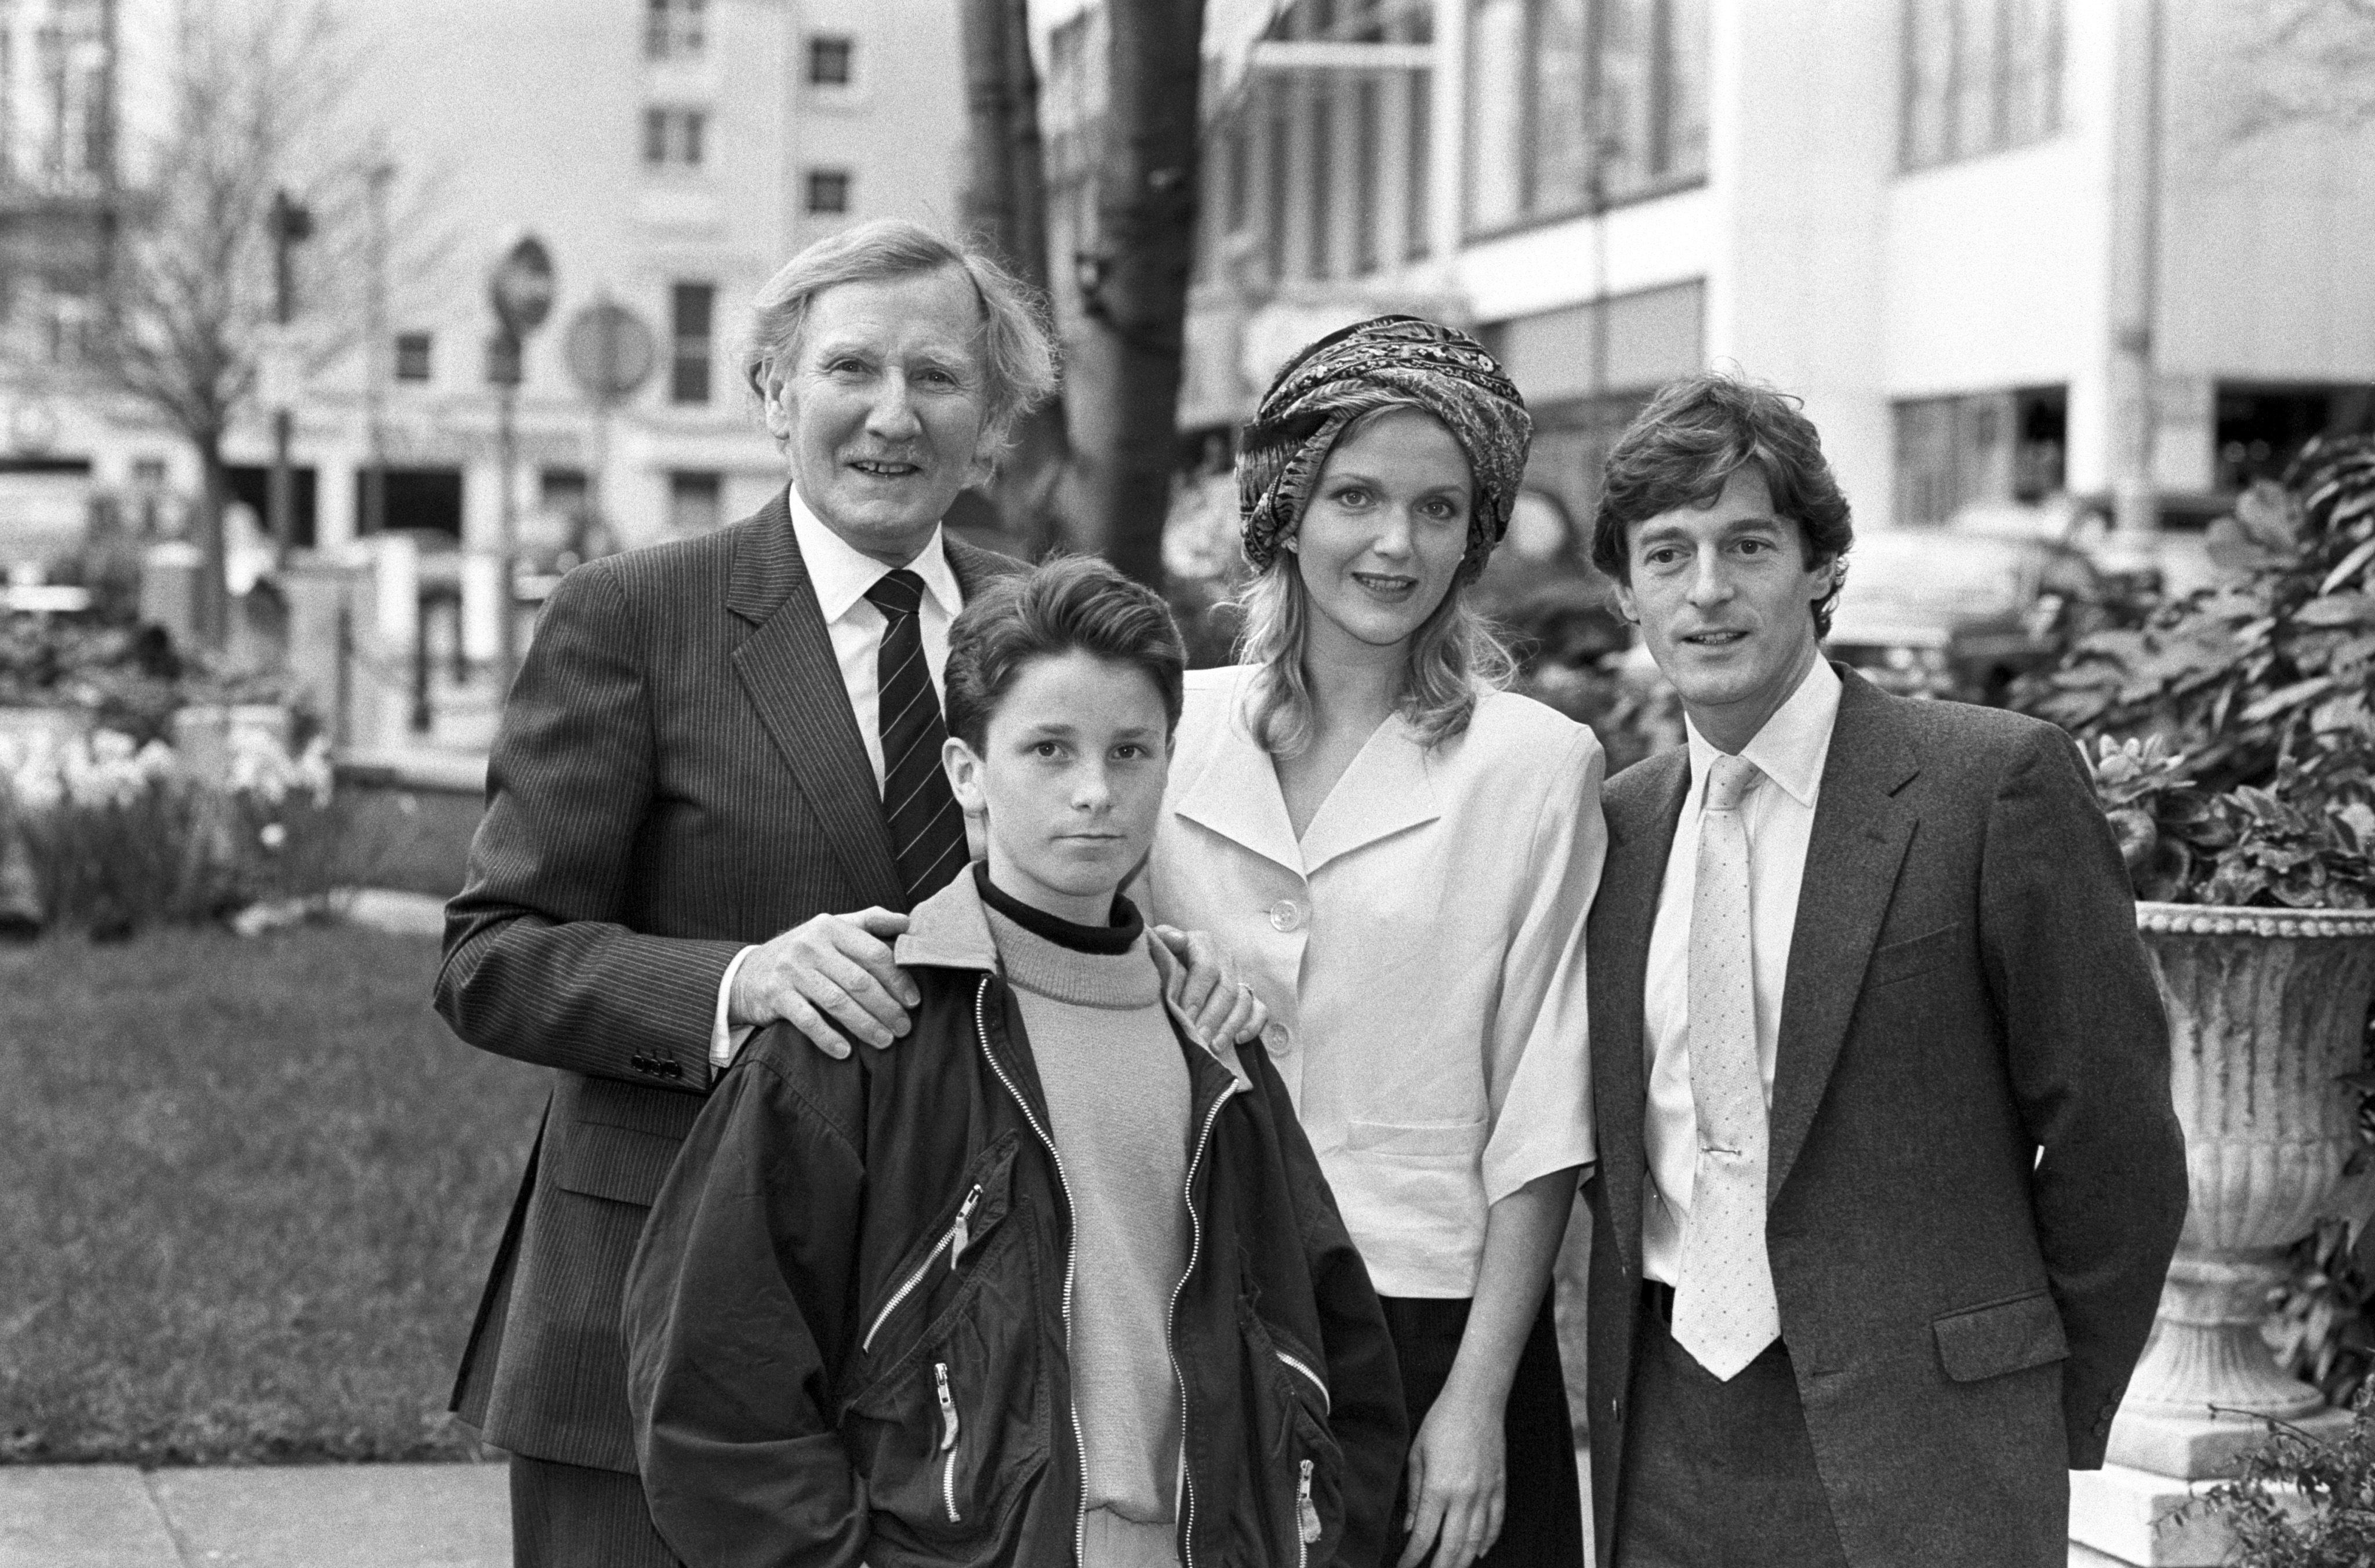 Stars of Steven Spielberg's film Empire of the Sun meet in London before tomorrow night's Royal Film Performance attended by the Queen. (l-r) Leslie Phillips, Christian Bale, 14, Miranda Richardson and Nigel Havers. 20/03/1988